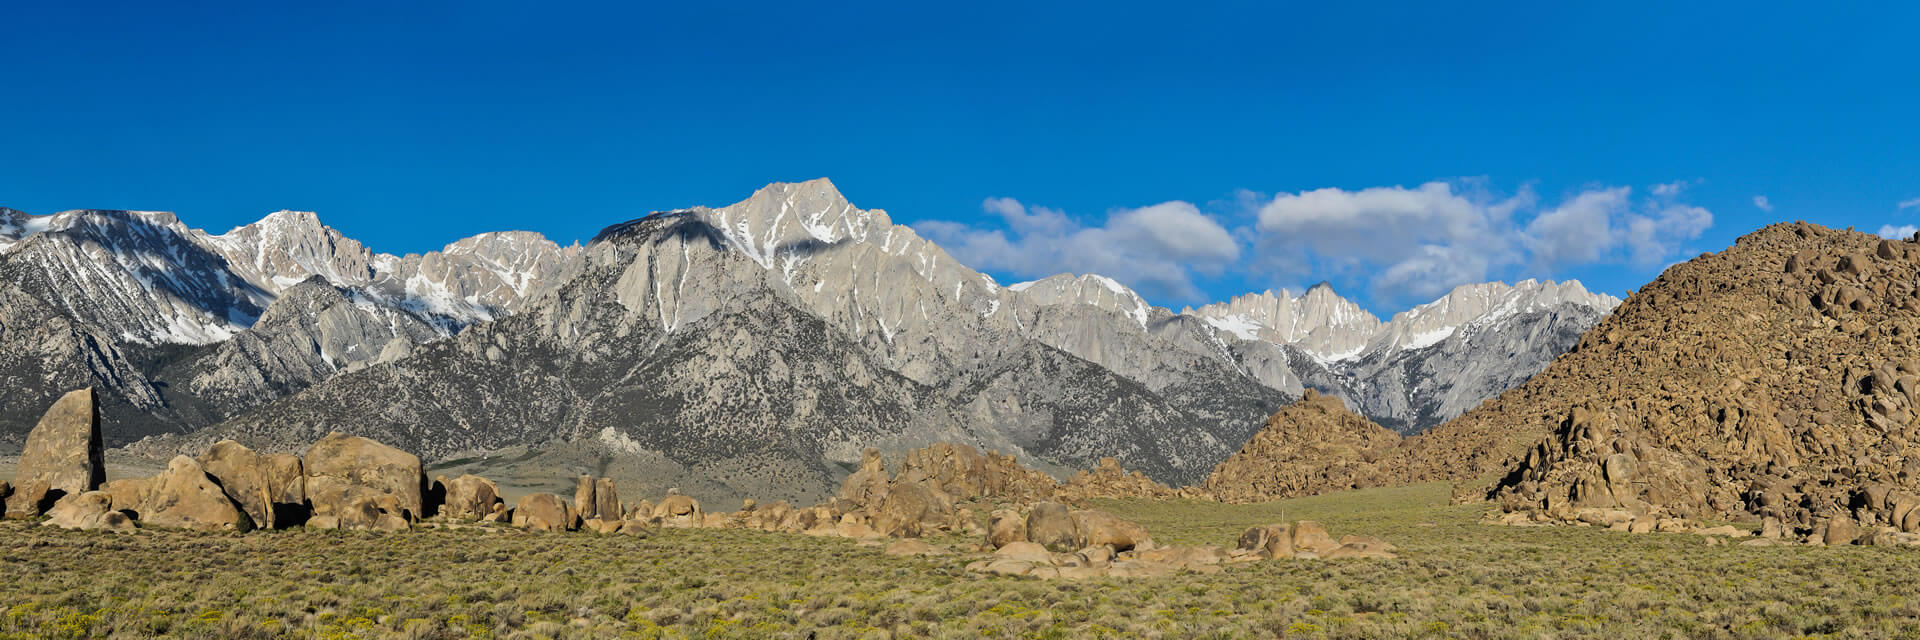 Panorama of Lone Pine Peak